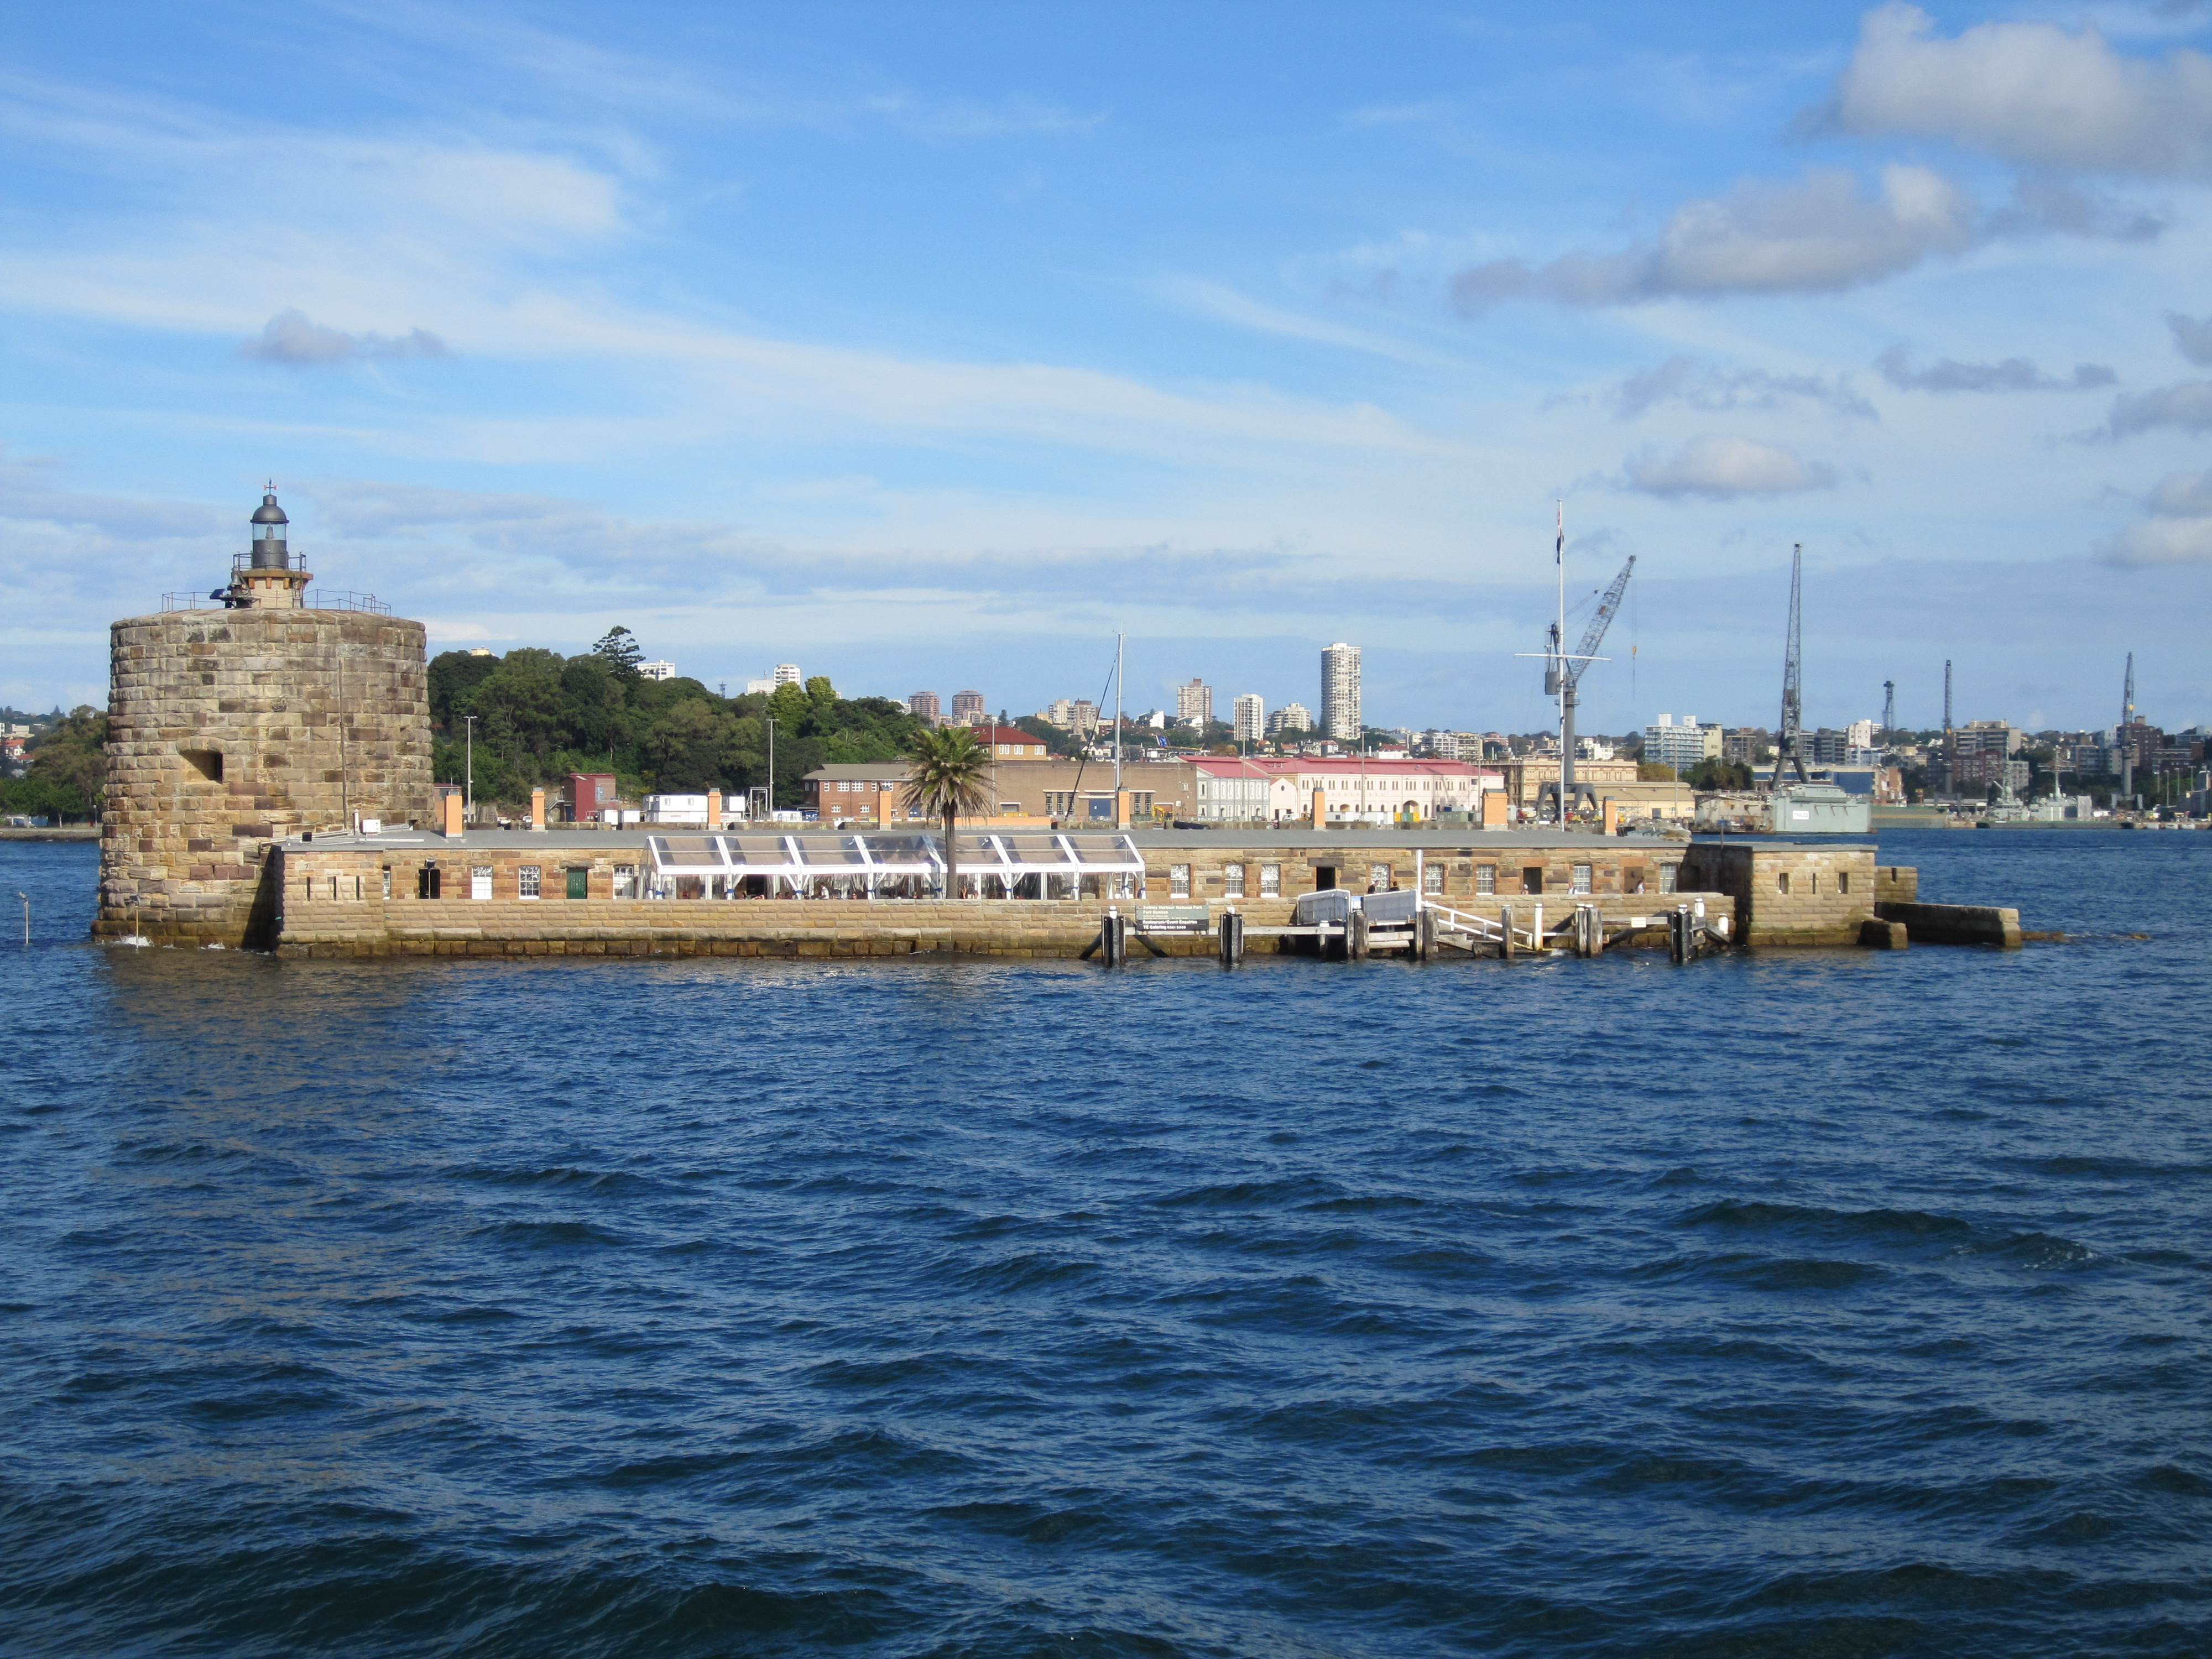 Amazing Fort Denison Pictures & Backgrounds